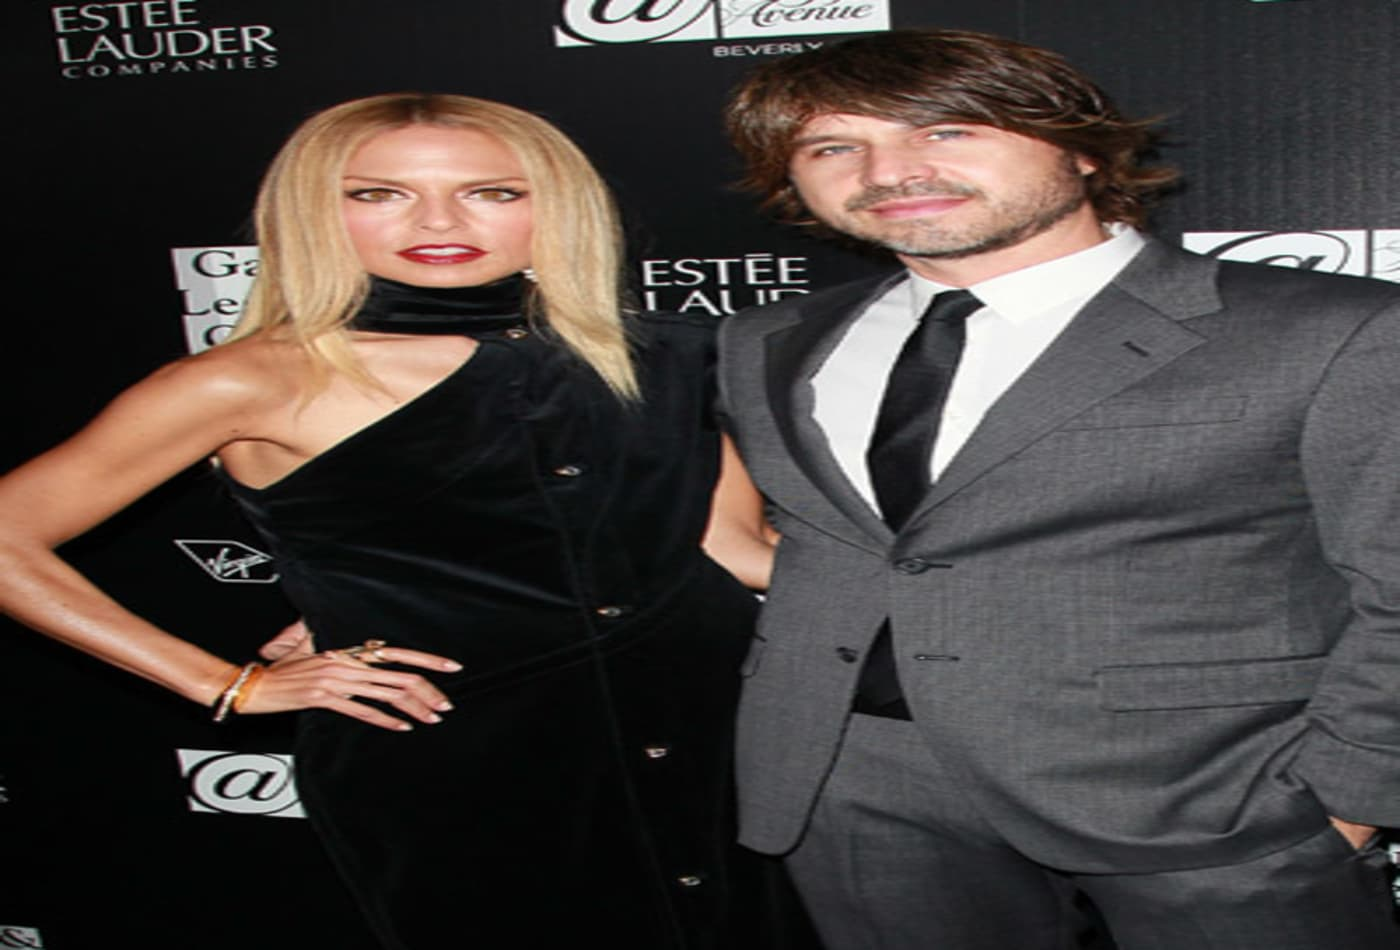 power-broker-of-fashion-Rodger-Berman-Rachel-Zoe.jpg